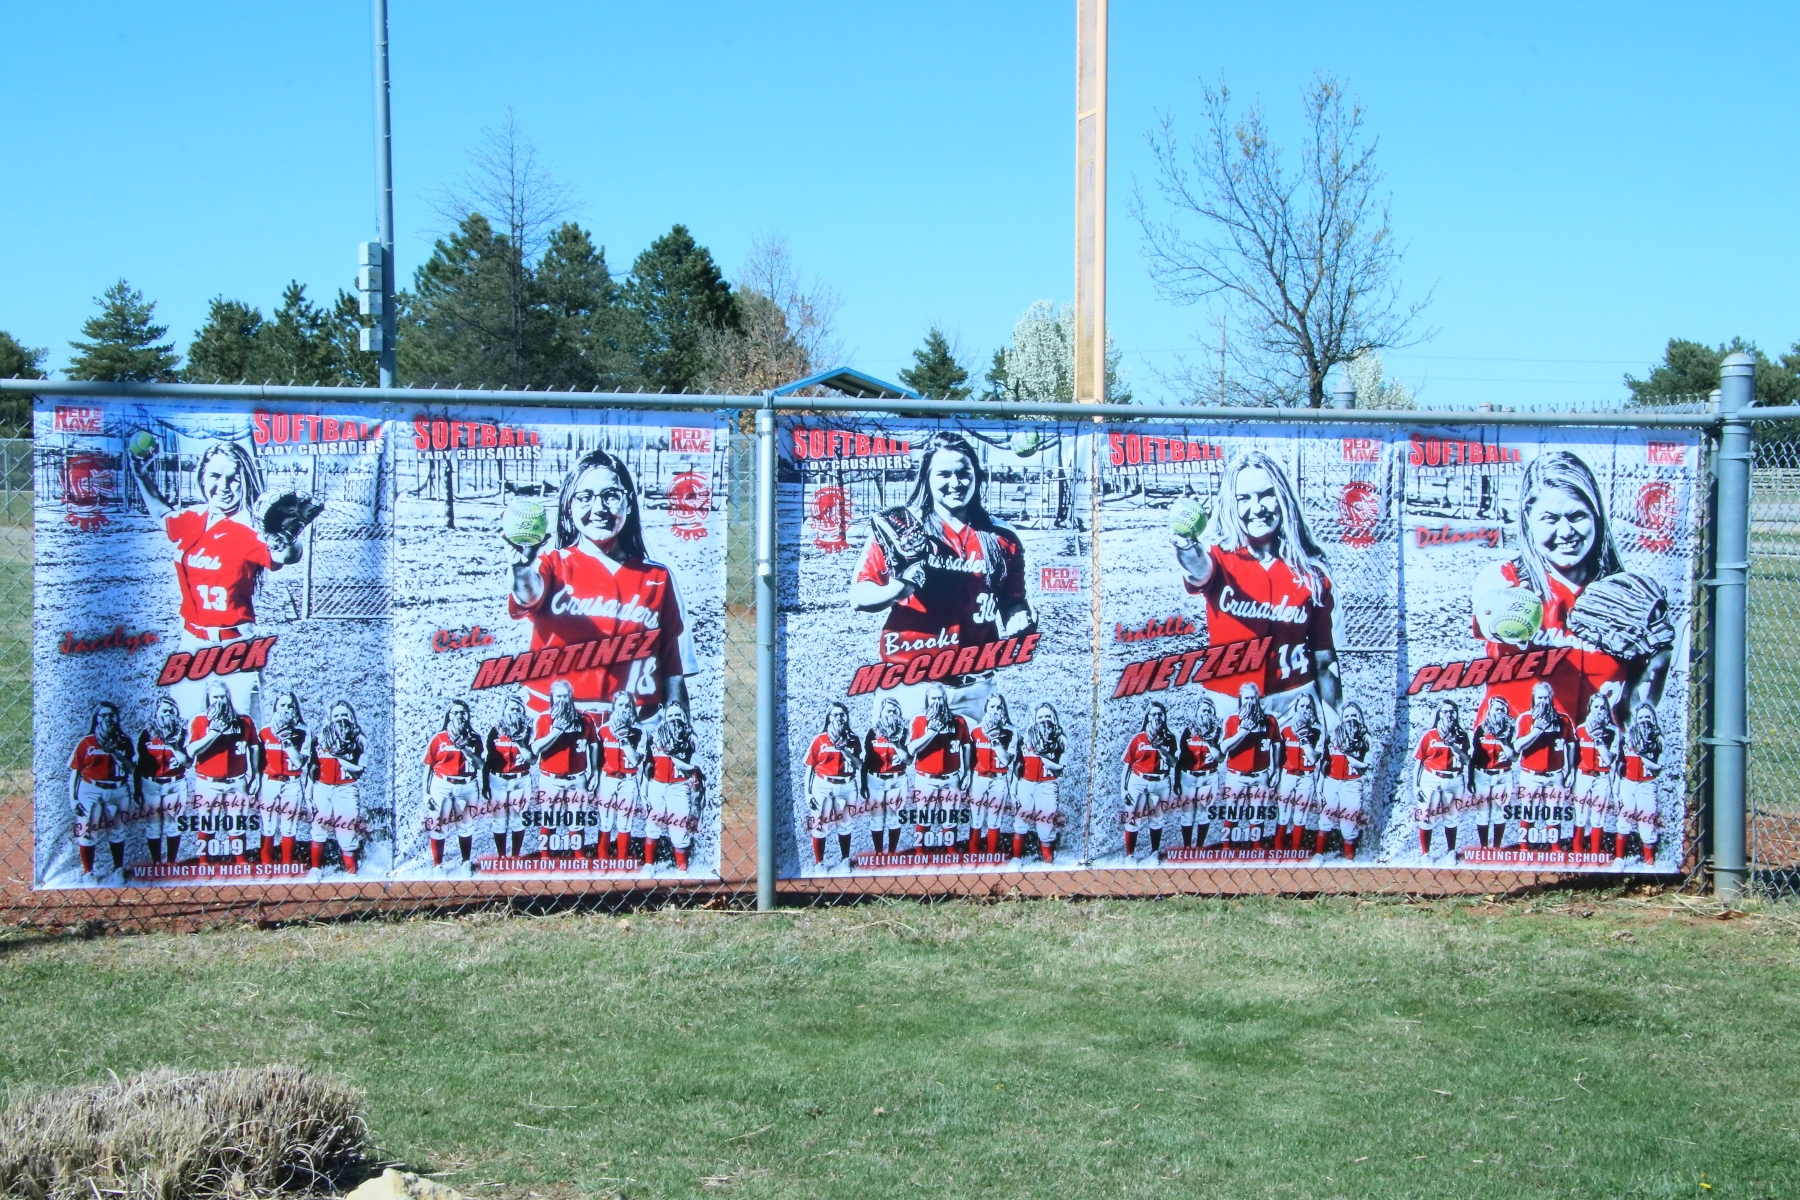 Lady Crusader Softball Banners 2019